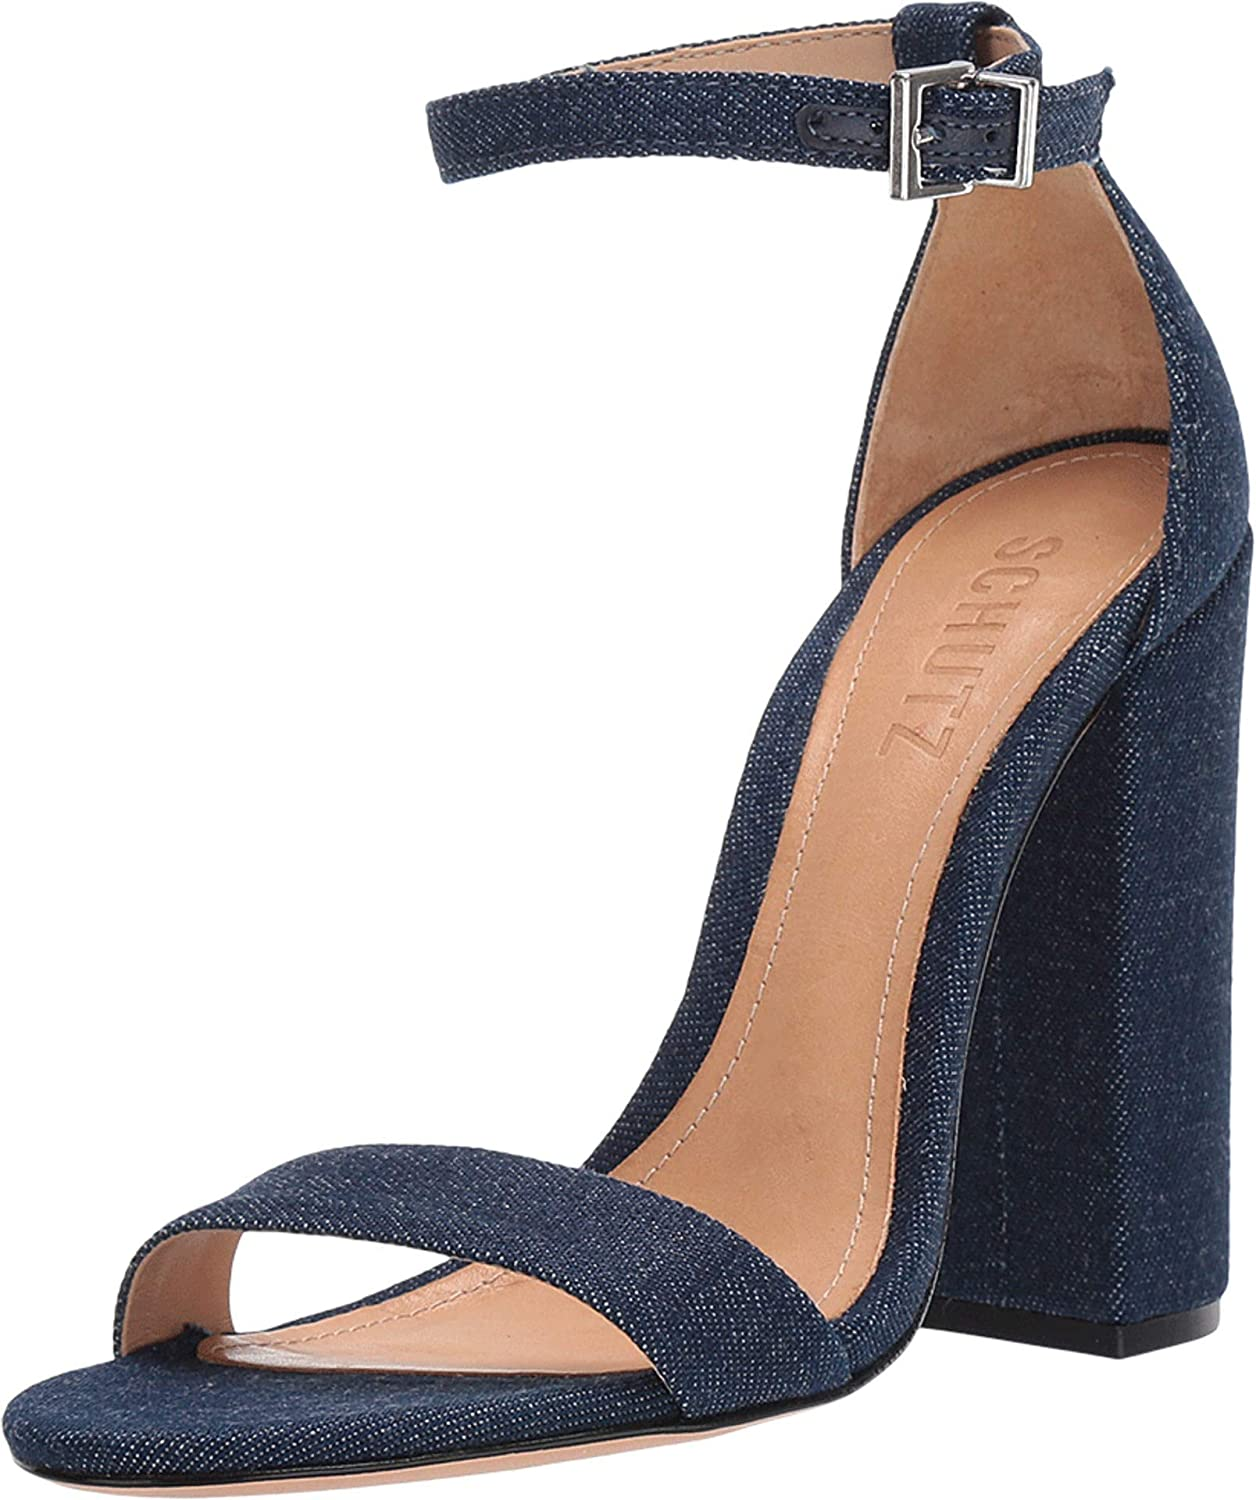 Schutz Womens Enida Dress Sandal